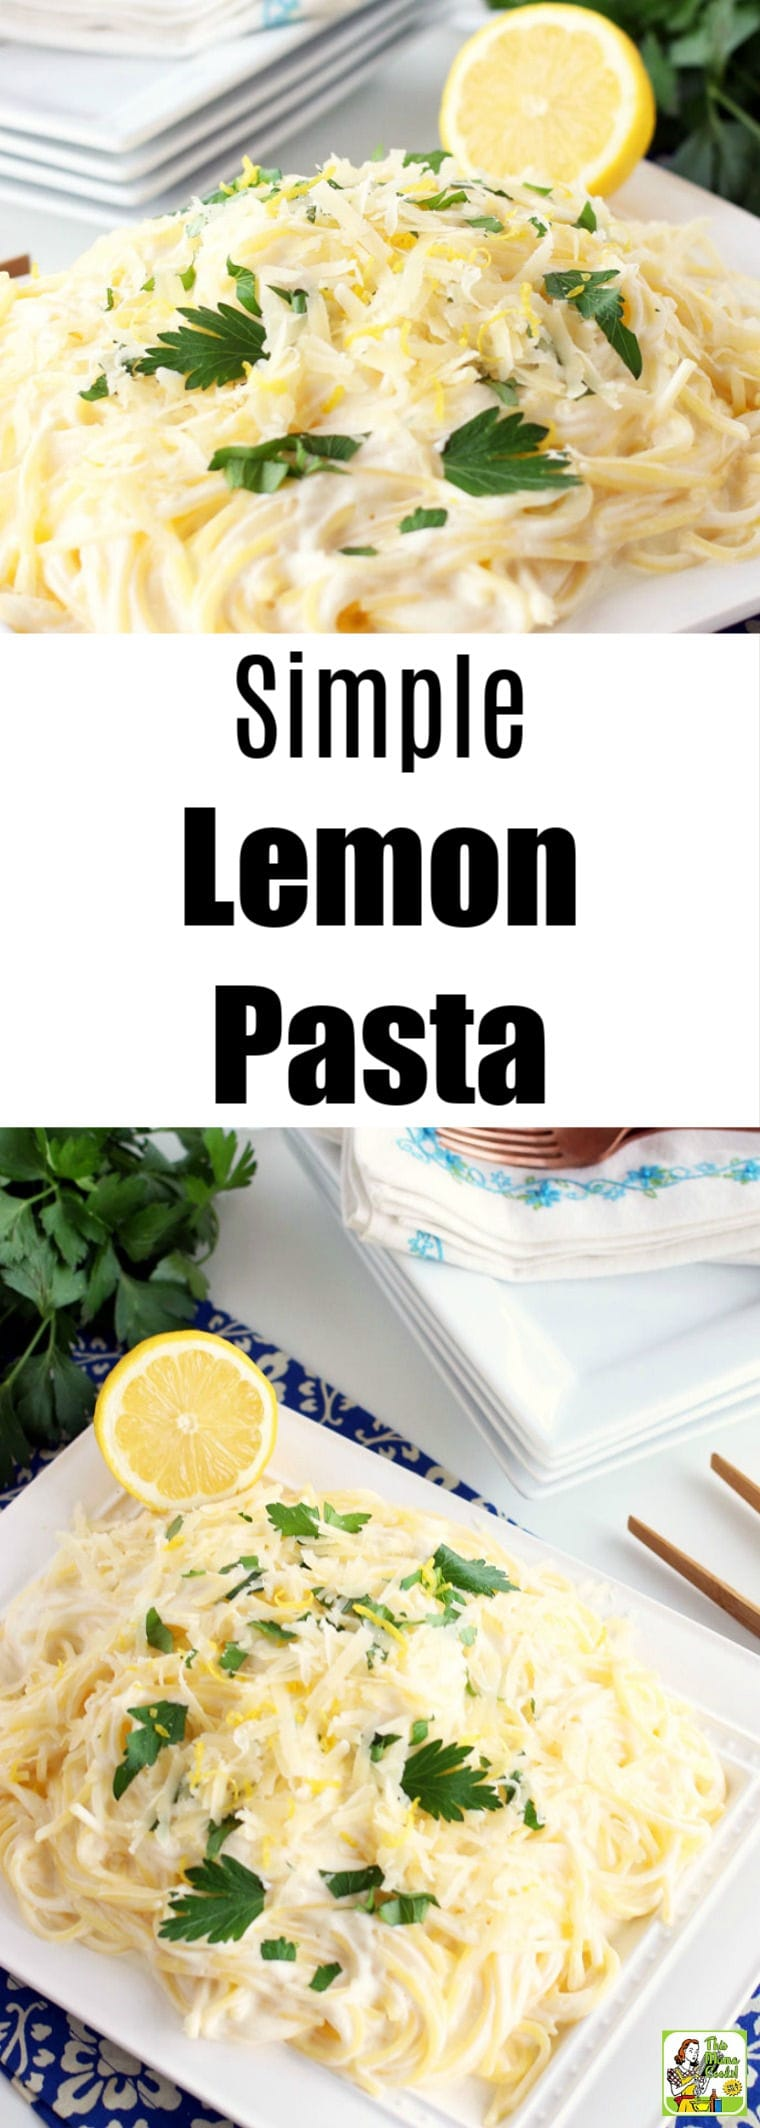 This Simple Lemon Pasta recipe is a delightful pairing of creamy sauce, pasta, and bright lemon flavor that makes a perfect weeknight dinner recipe. Easy to adapt to vegan and gluten-free diets. #recipes #recipe #glutenfree #glutenfreerecipes #dinner #easydinner #dinnerrecipes #pasta #lemon #vegan